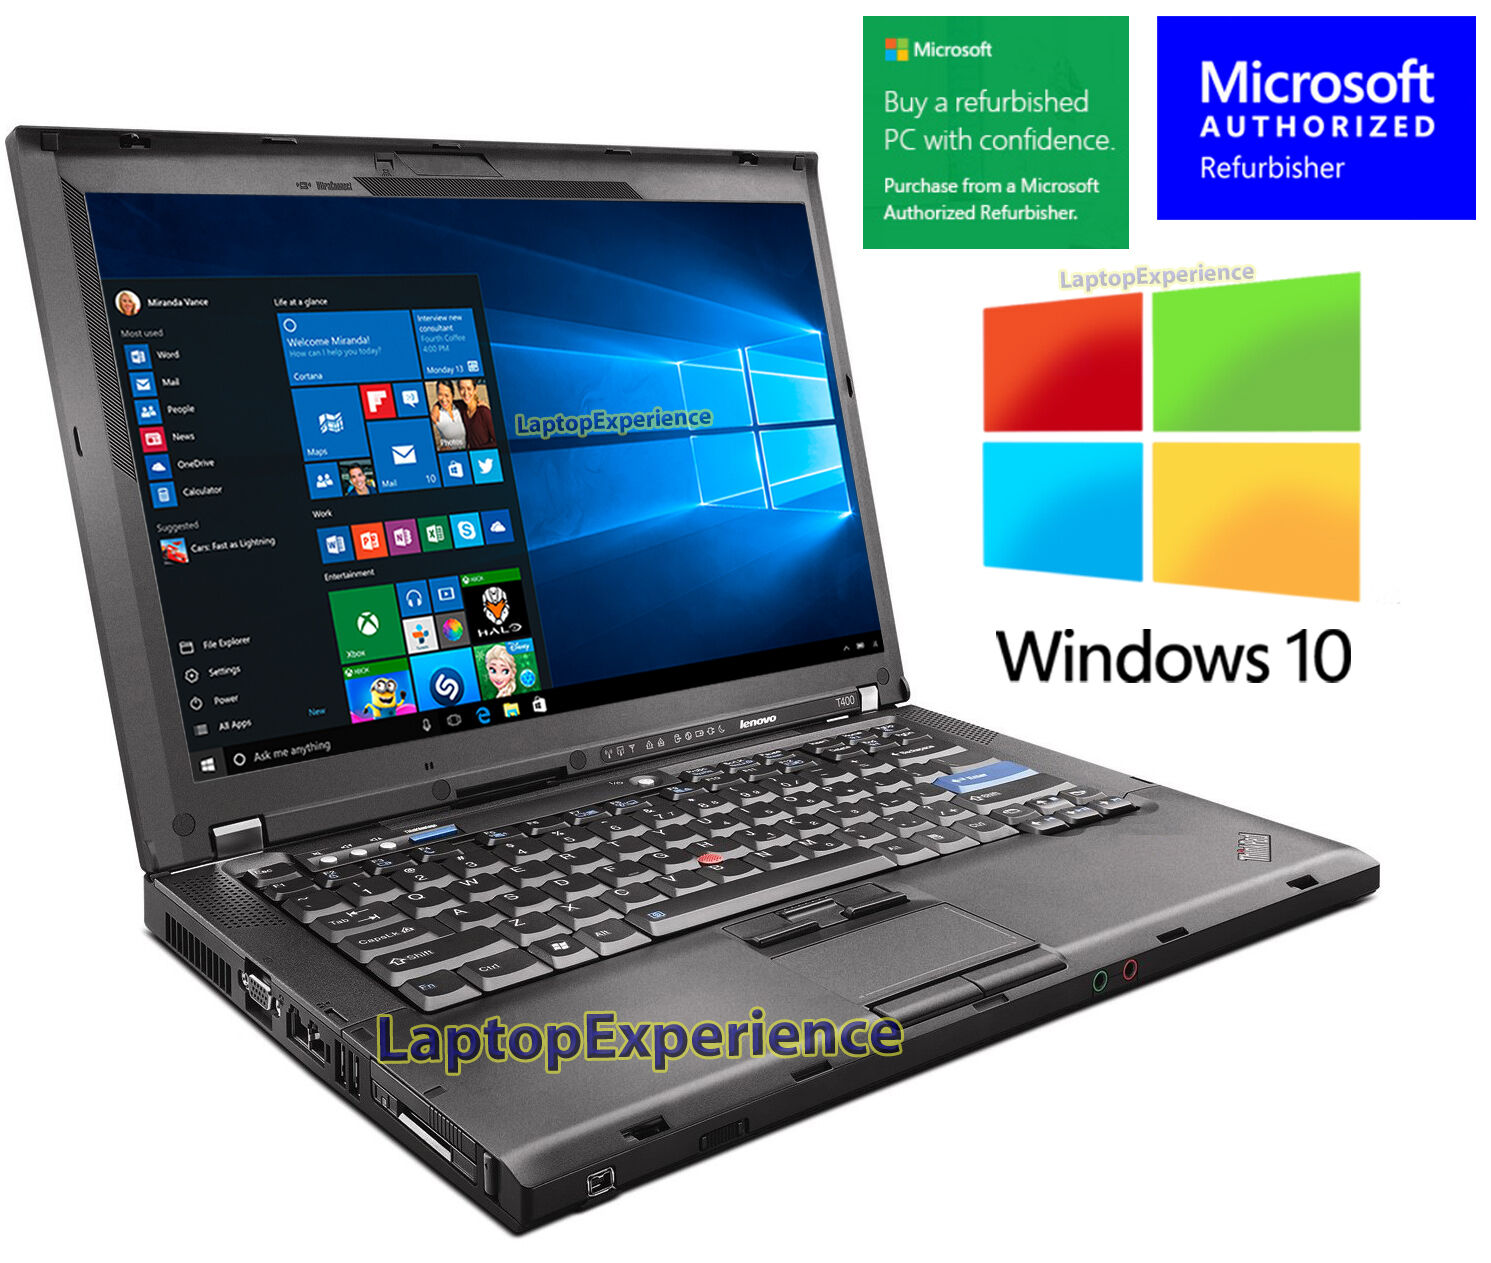 Laptop Windows - IBM LENOVO LAPTOP THINKPAD T400 WINDOWS 10 WIN DVDRW WiFi CORE 2 DUO 2.26GHz PC